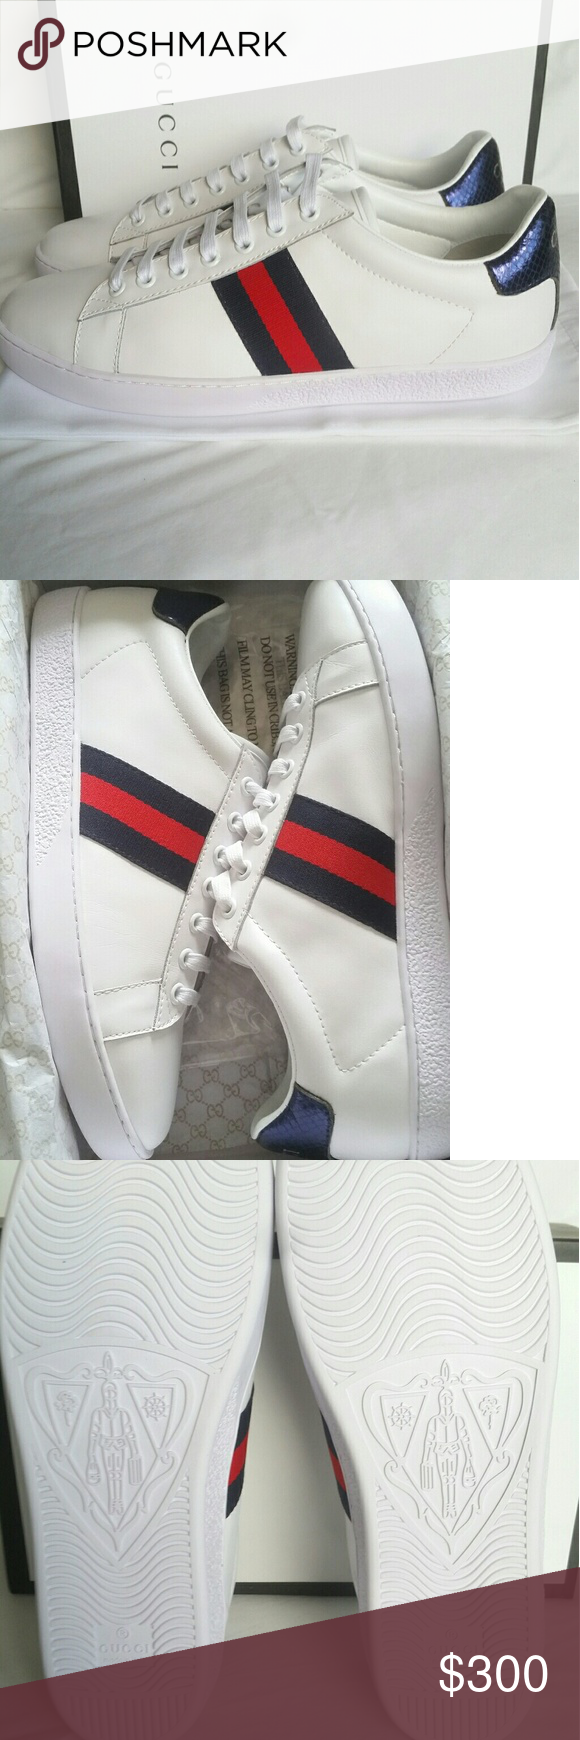 White gucci shoes, Gucci shoes sneakers